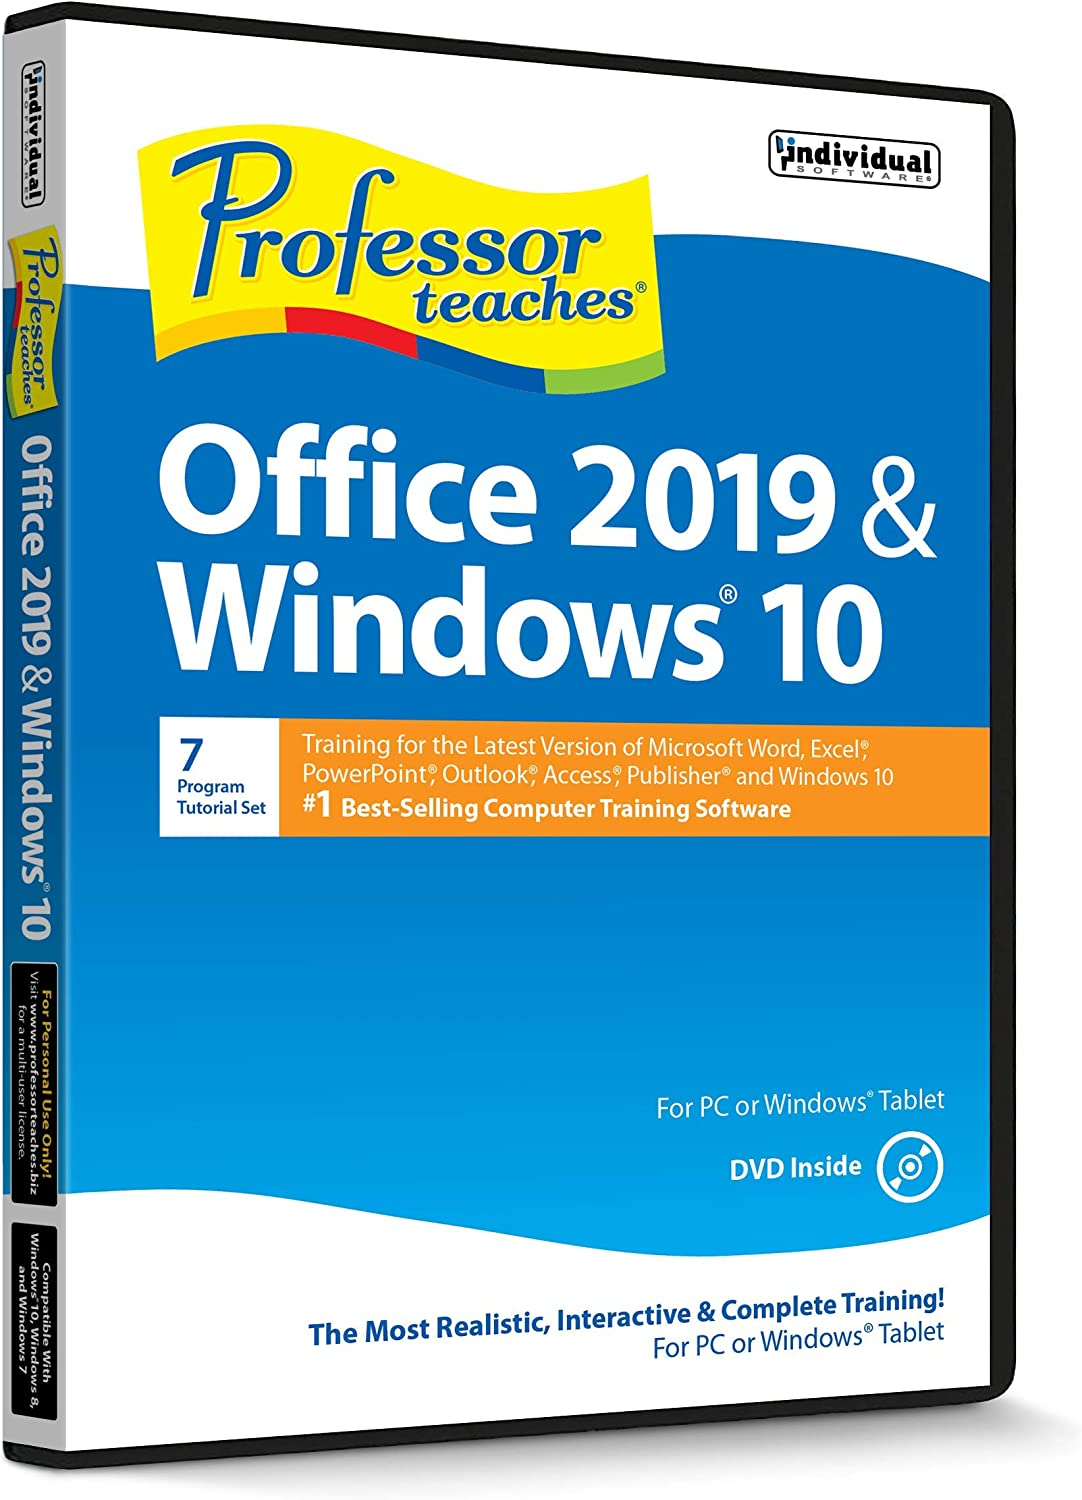 Professor Teaches Office 2019 & Windows 10